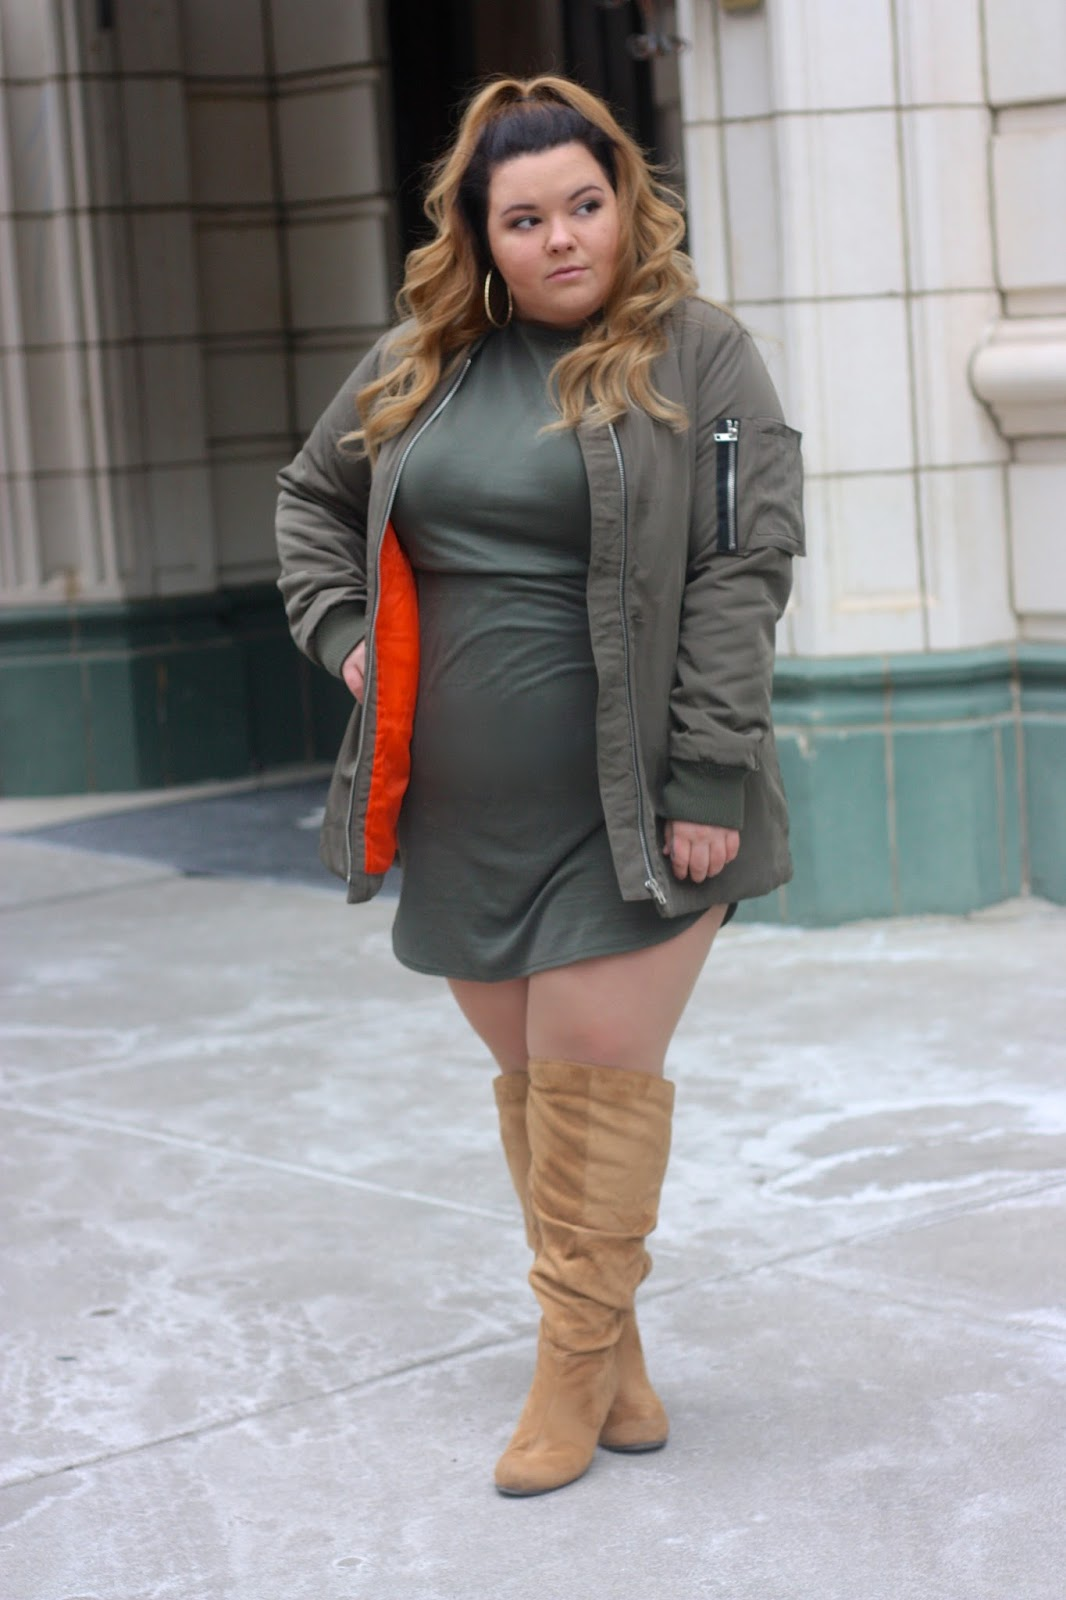 natalie in the city, military green bomber, hunter orange and military green, bomber, fashion blogger, knee high suede boots wide calf, knee high boots plus size, plus size fashion blogger, chicago, forever 21 plus, natalie craig, bottle blonde